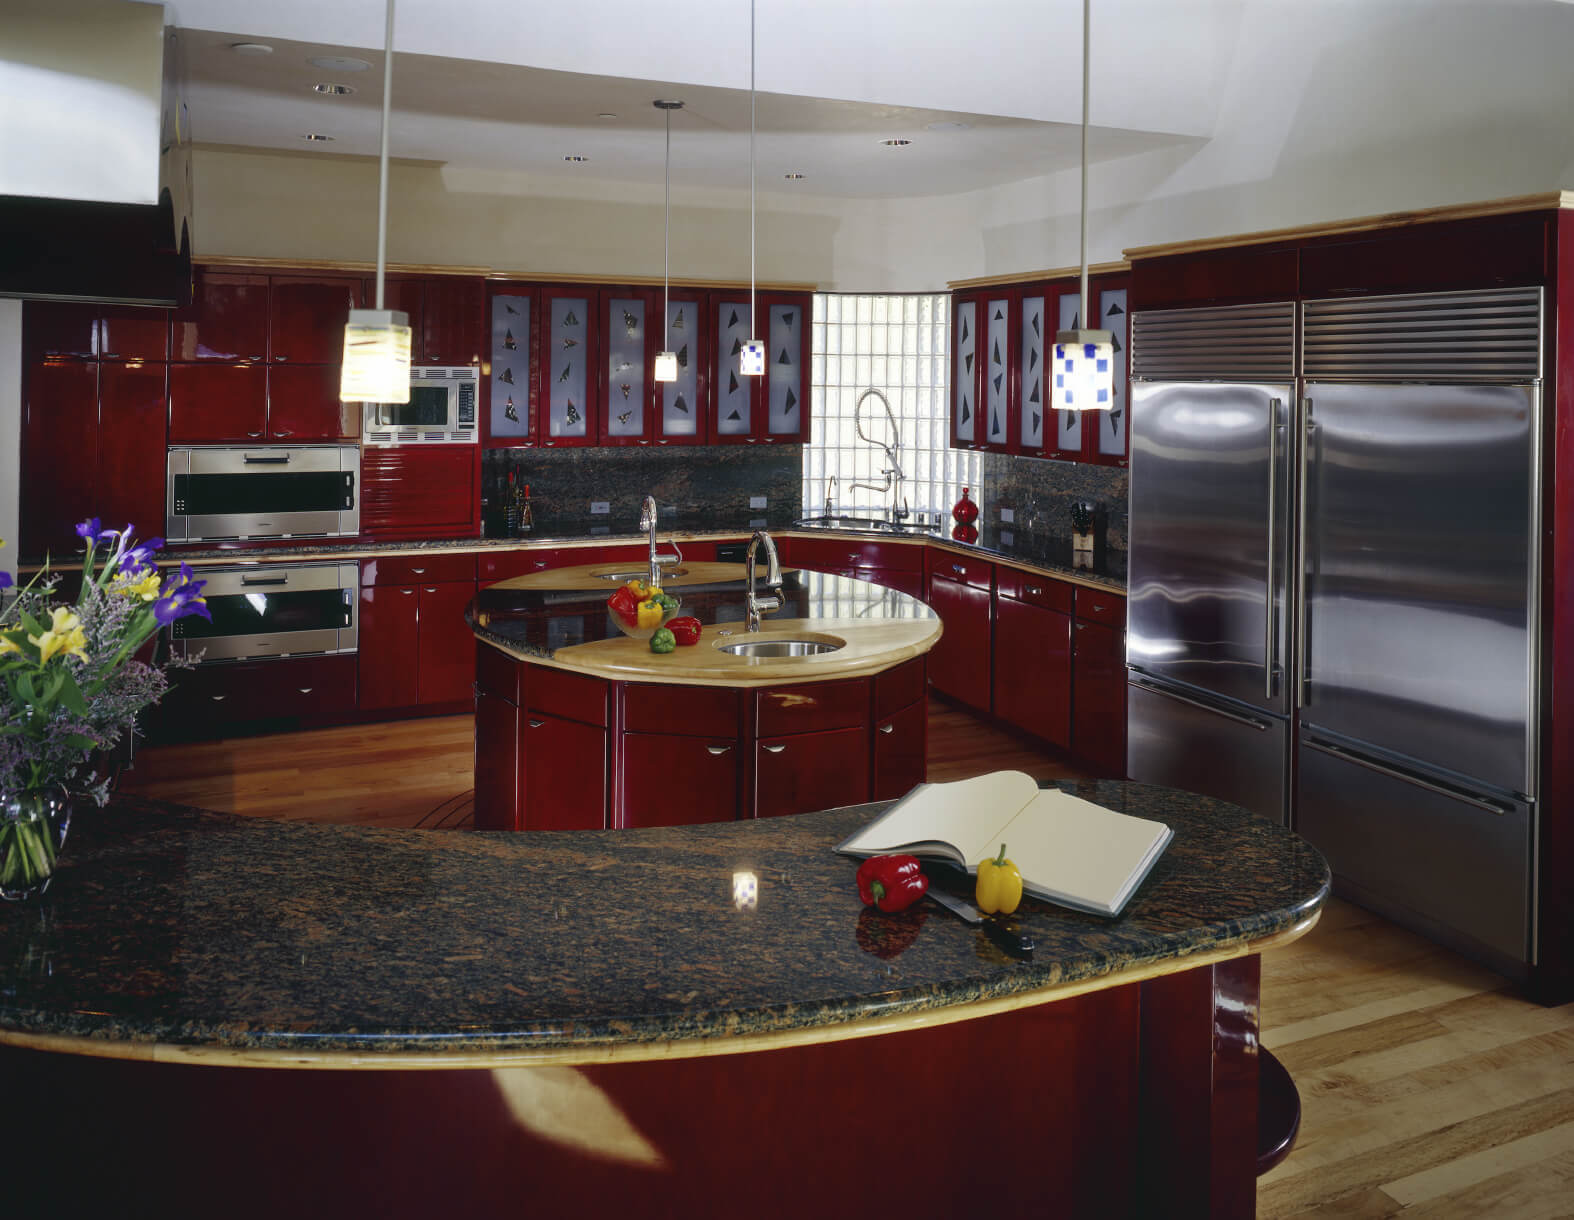 20 of the most popular kitchen designs on home stratosphere for 9 x 10 kitchen ideas